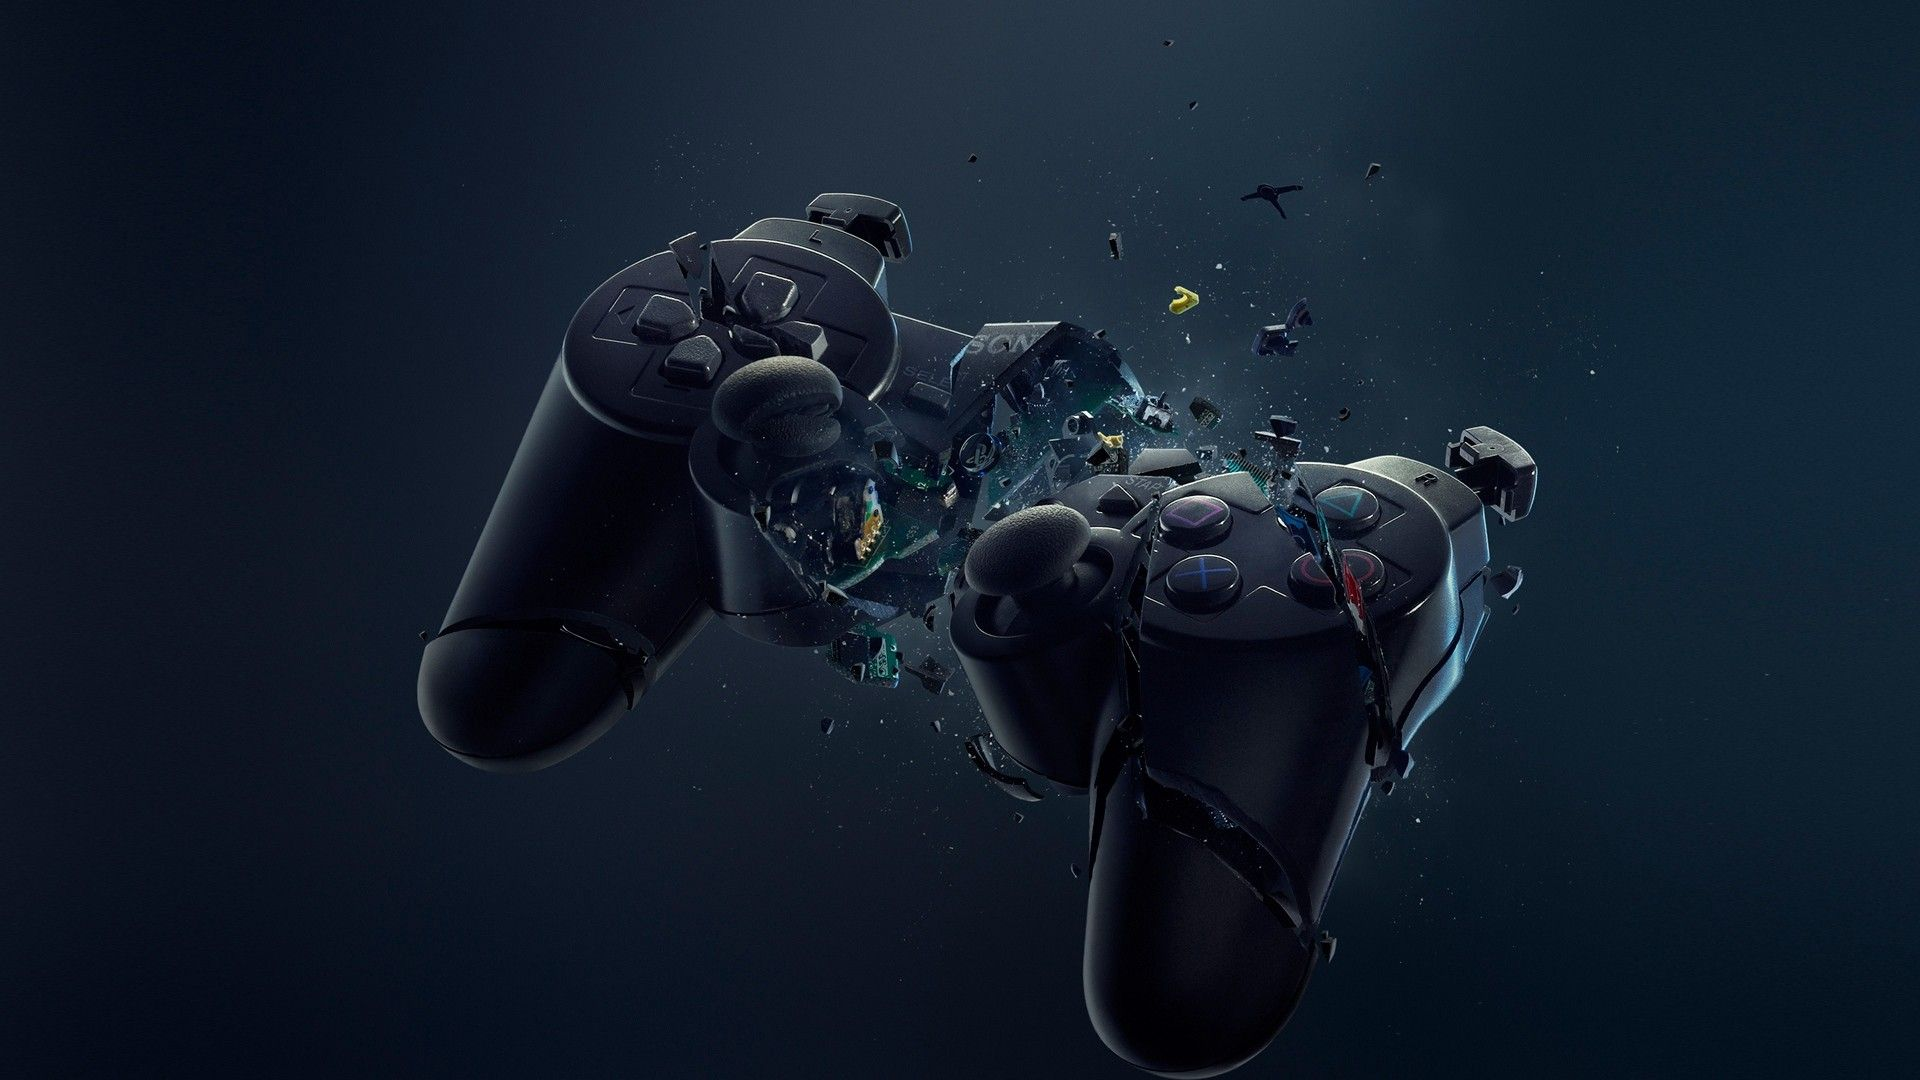 Pin By Sprint Arts On Fury Gamemers Gaming Wallpapers 4k Gaming